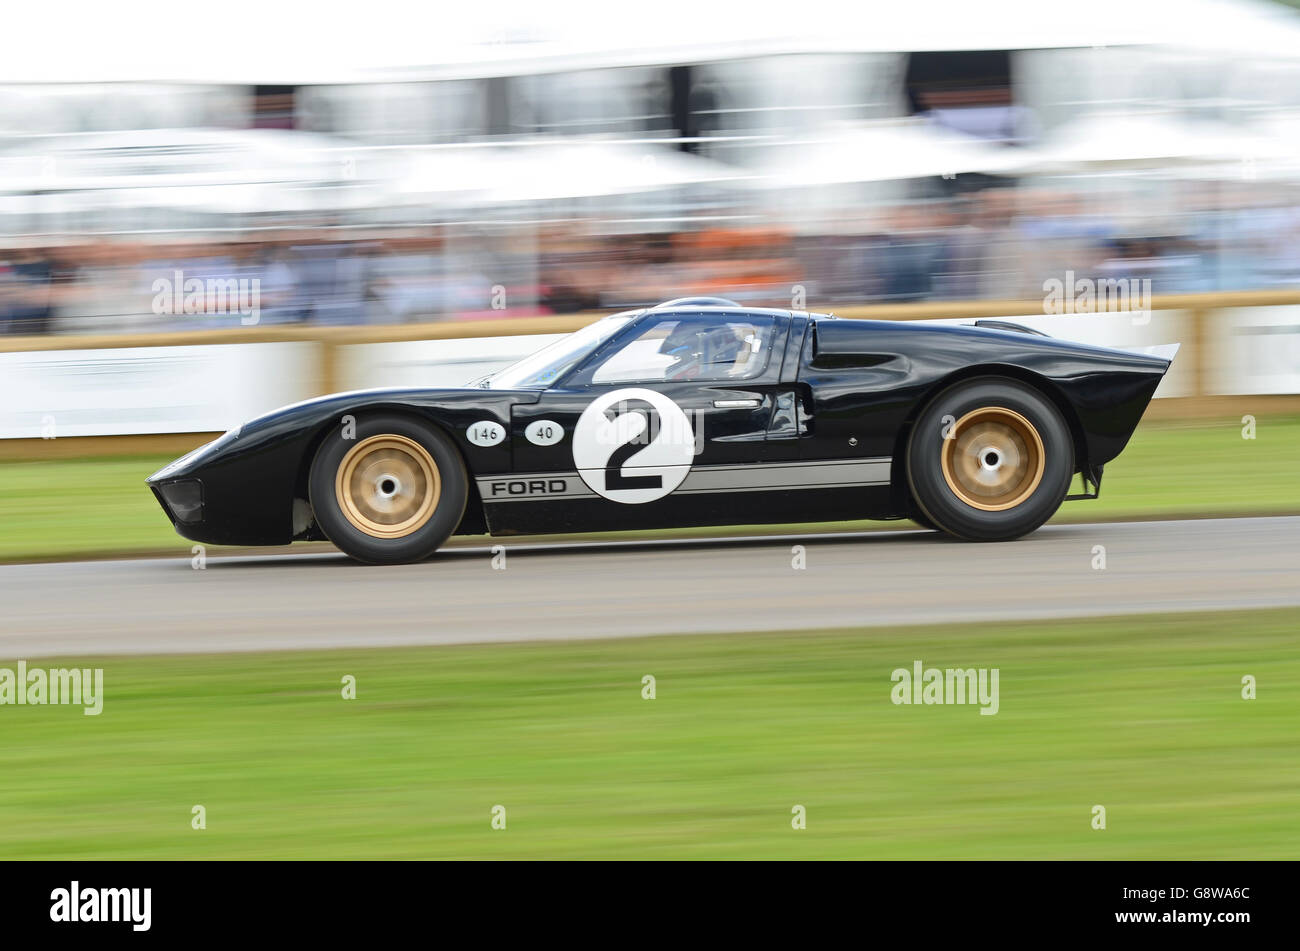 Ford Motor Co Stock Photos & Ford Motor Co Stock Images - Alamy